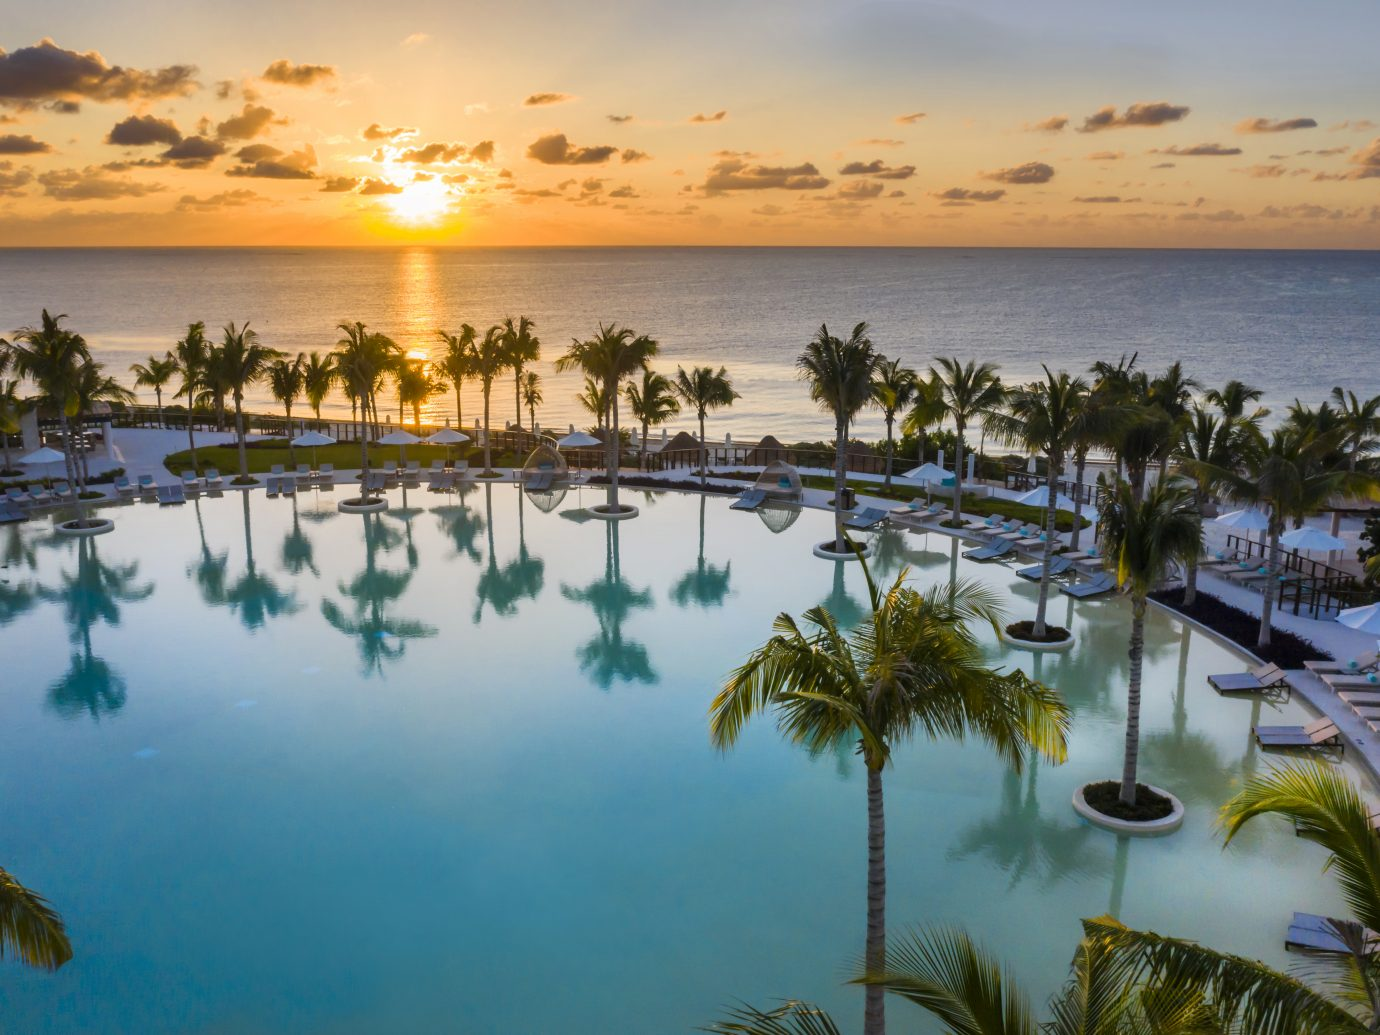 pool and ocean view at sunset at Haven Riviera Cancun, Mexico